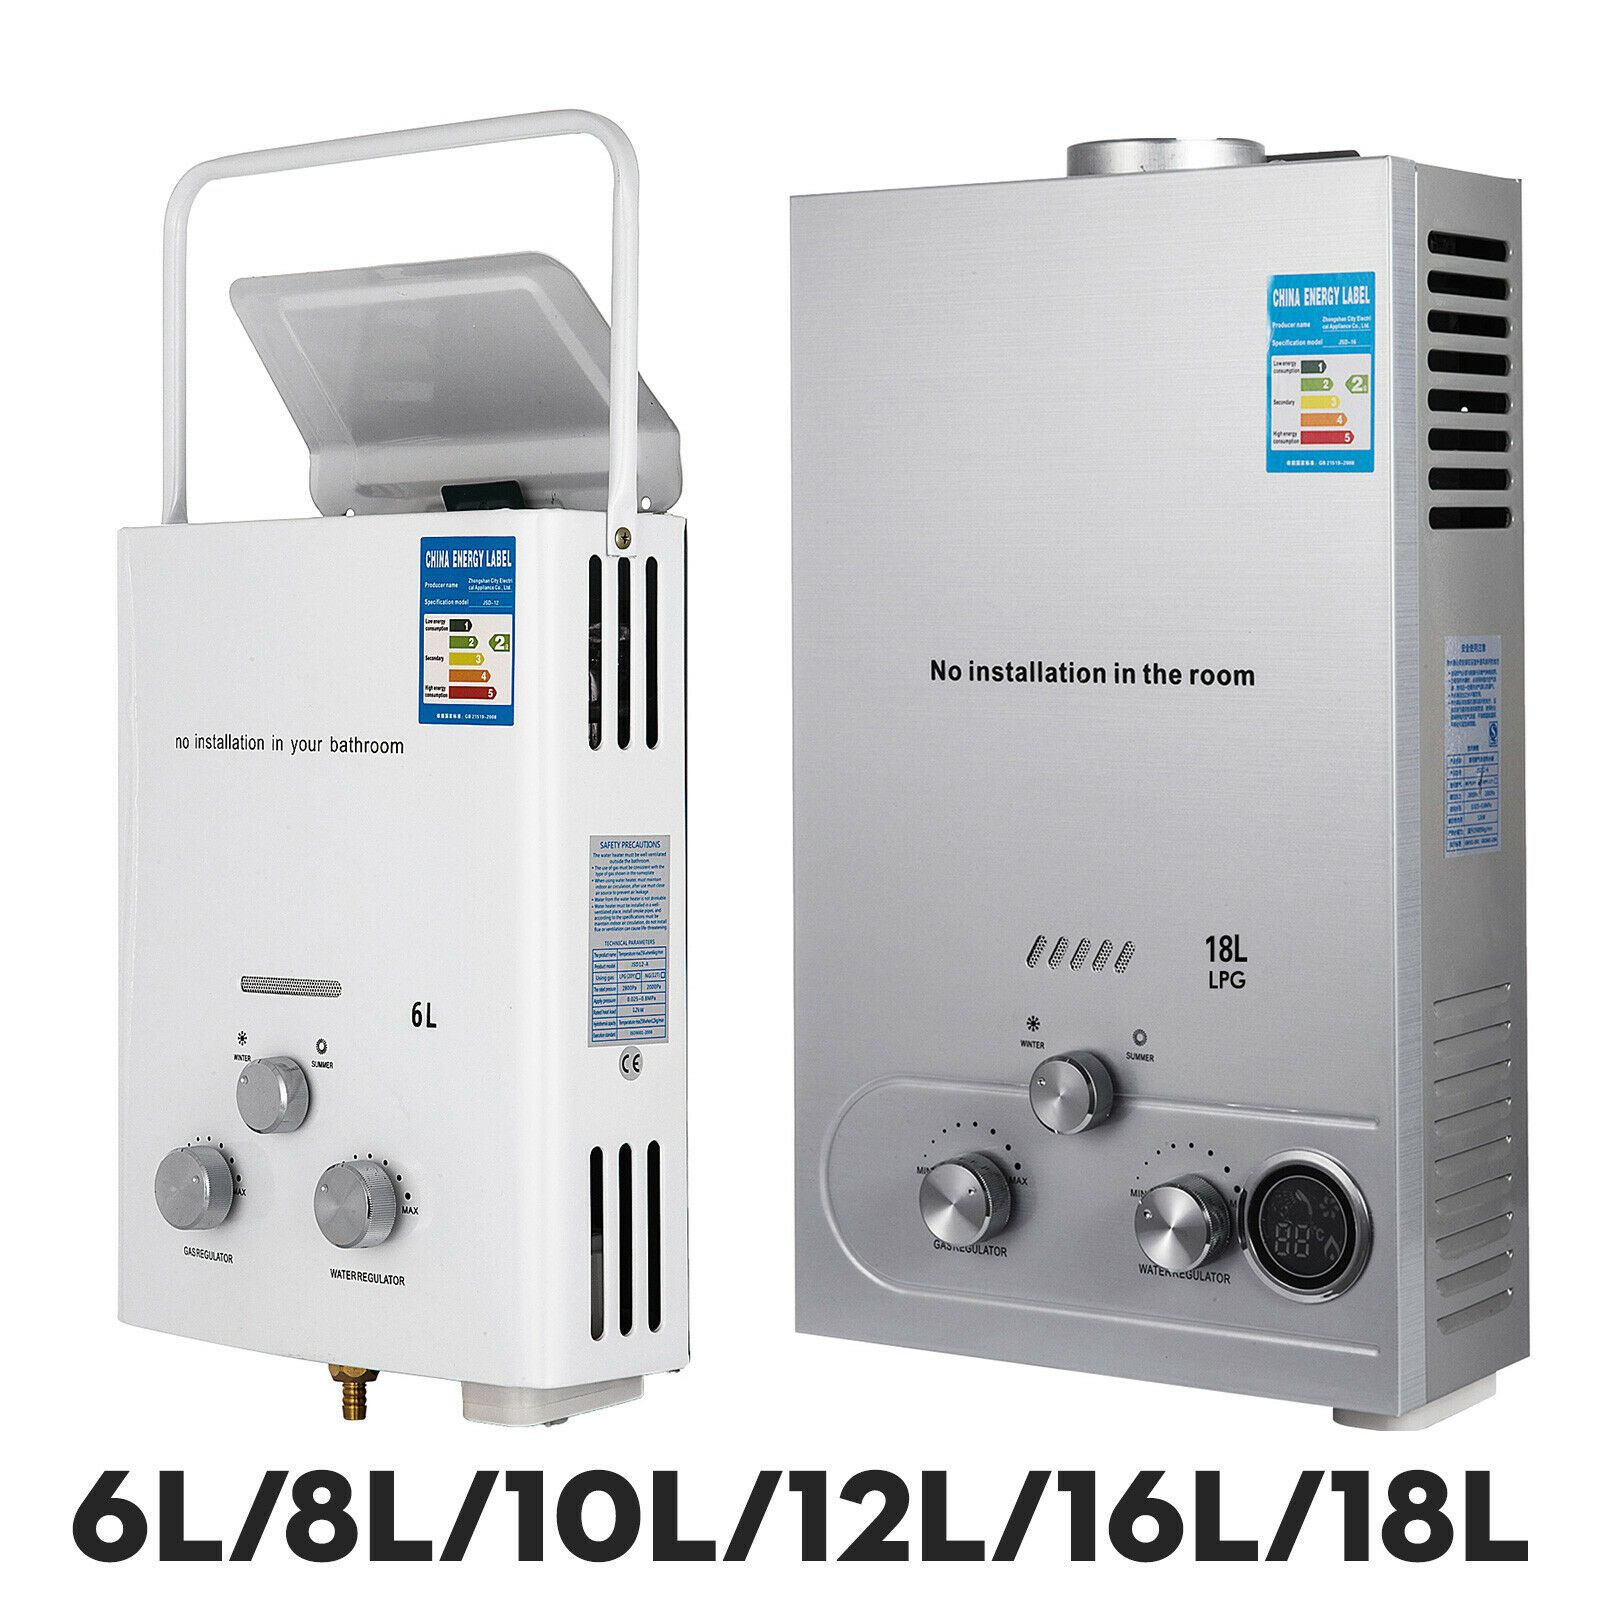 6l 8l 10l 12l 16l 18l Lpg Propane Gas Tankless Hot Water Heater With Shower Kit Tankless Hot Water Heater Water Heater Shower Kits